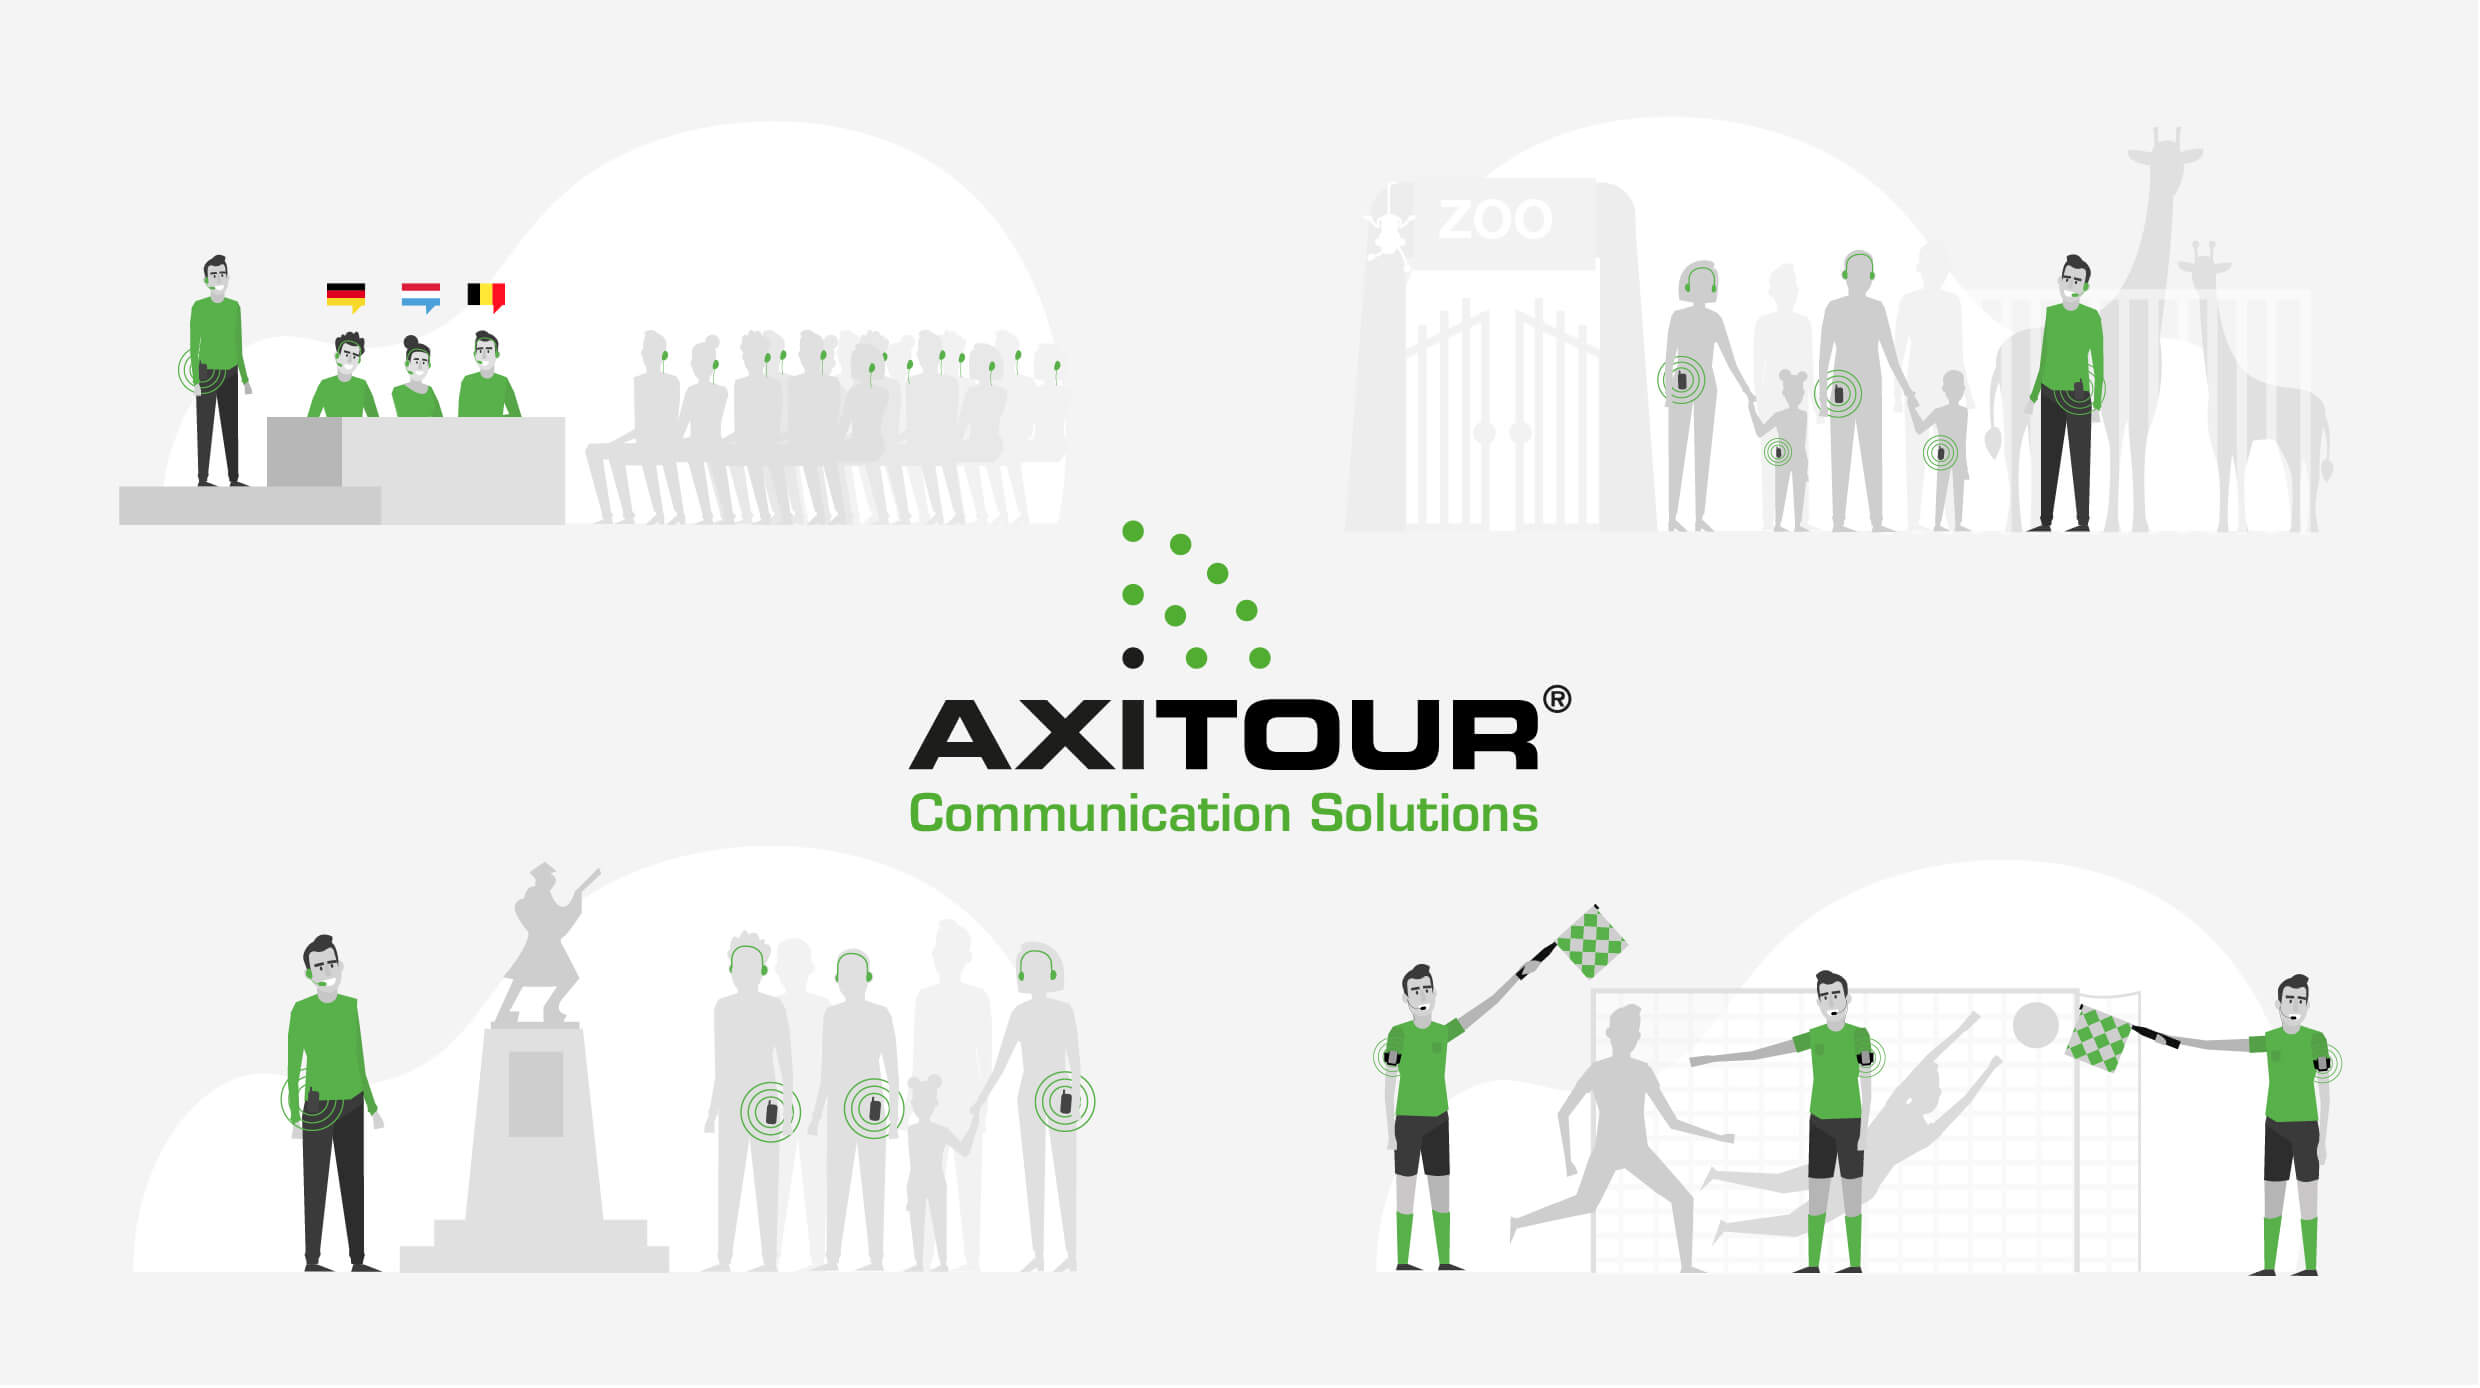 axitour-communication-systems-communicatie-systemen-gebruikstoepassingen